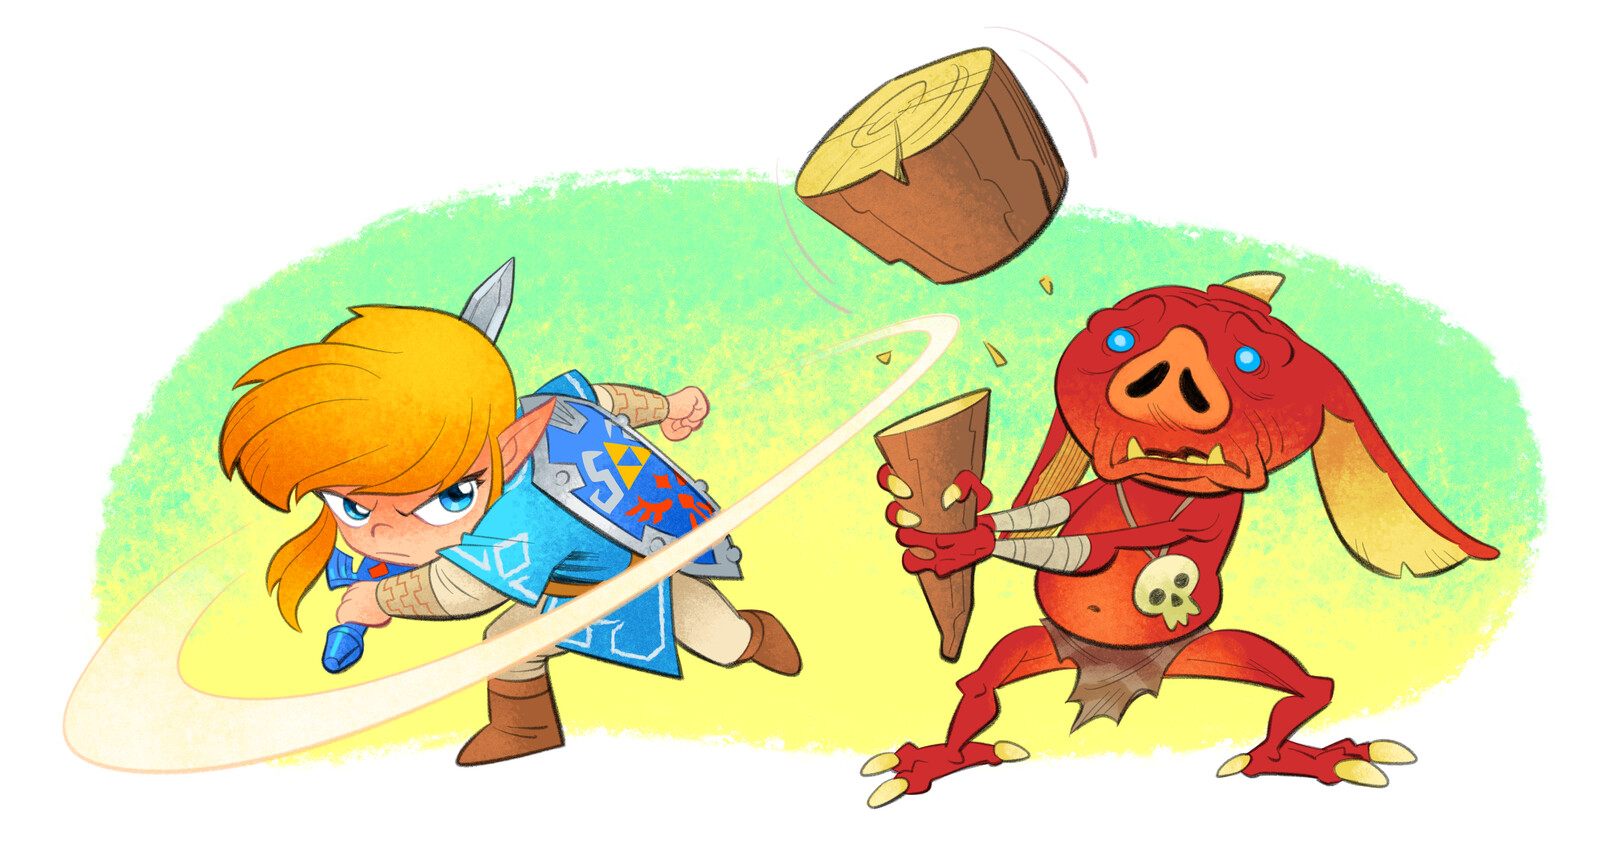 Legend of Zelda: Link vs. Bokoblin